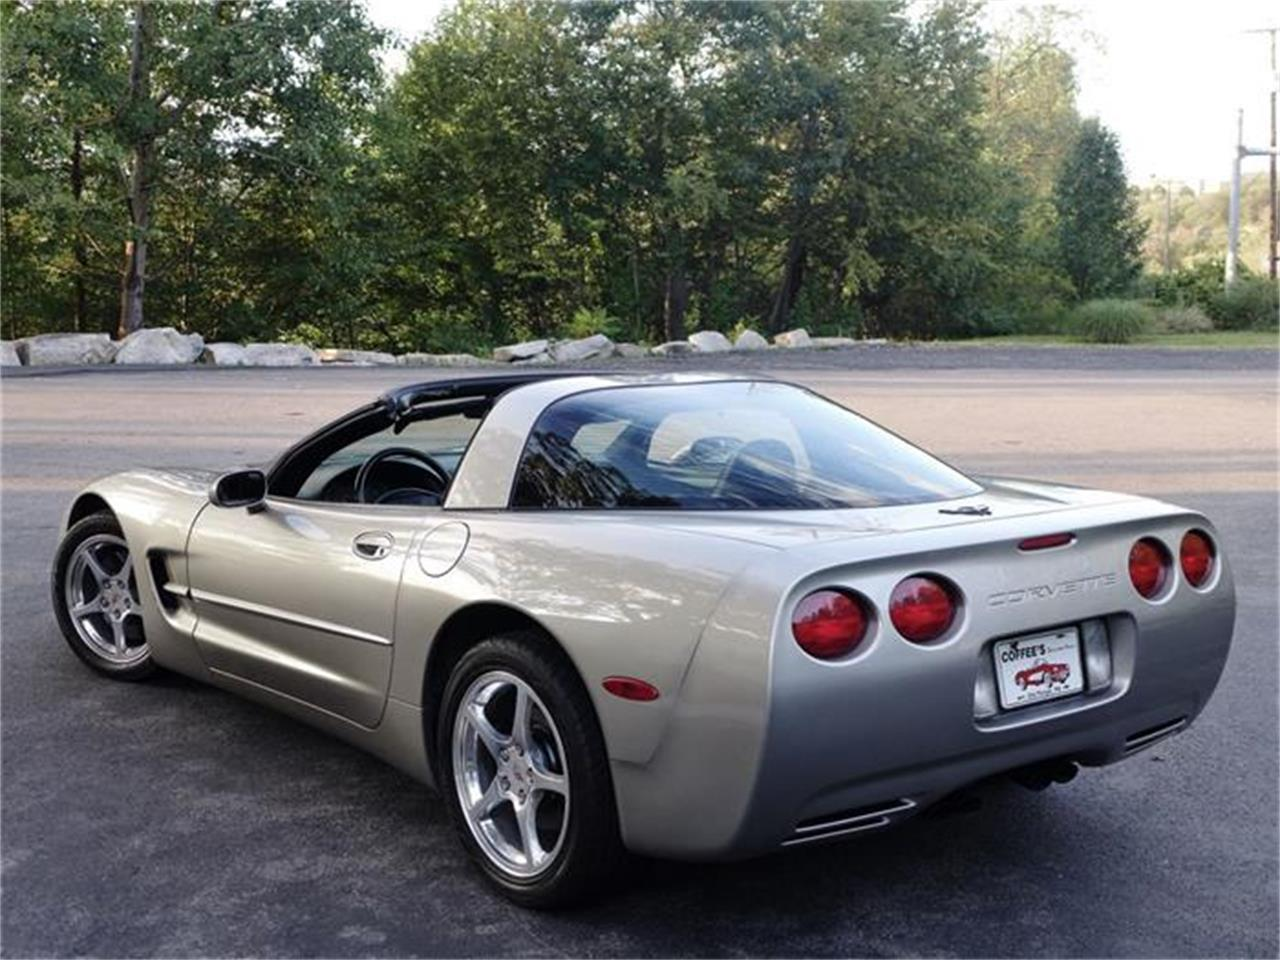 Large Picture of '99 Corvette - $17,900.00 - HB0J